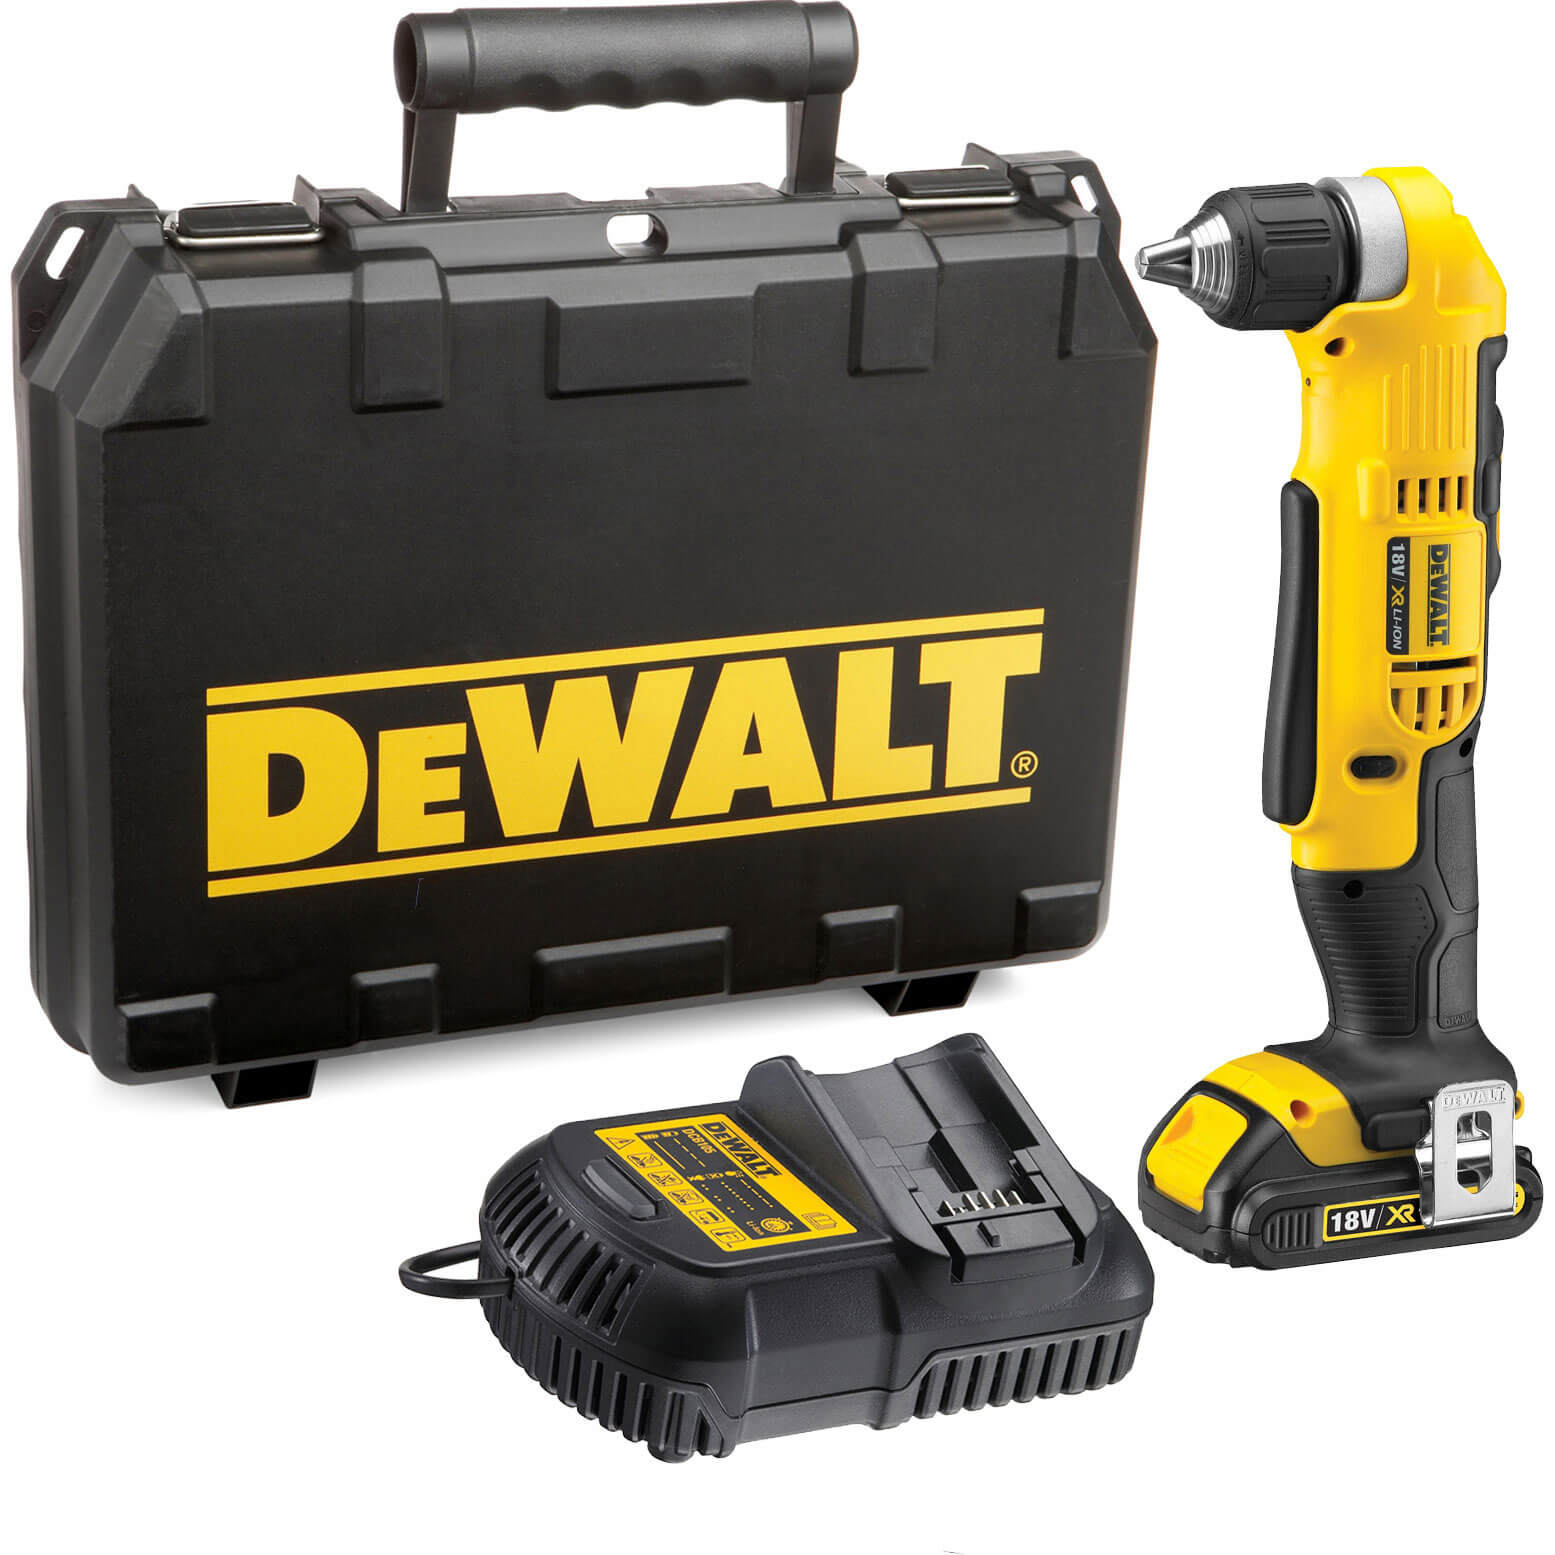 Image of DeWalt DCD740 18v XR Cordless Right Angle Drill 1 x 1.5ah Li-ion Charger Case